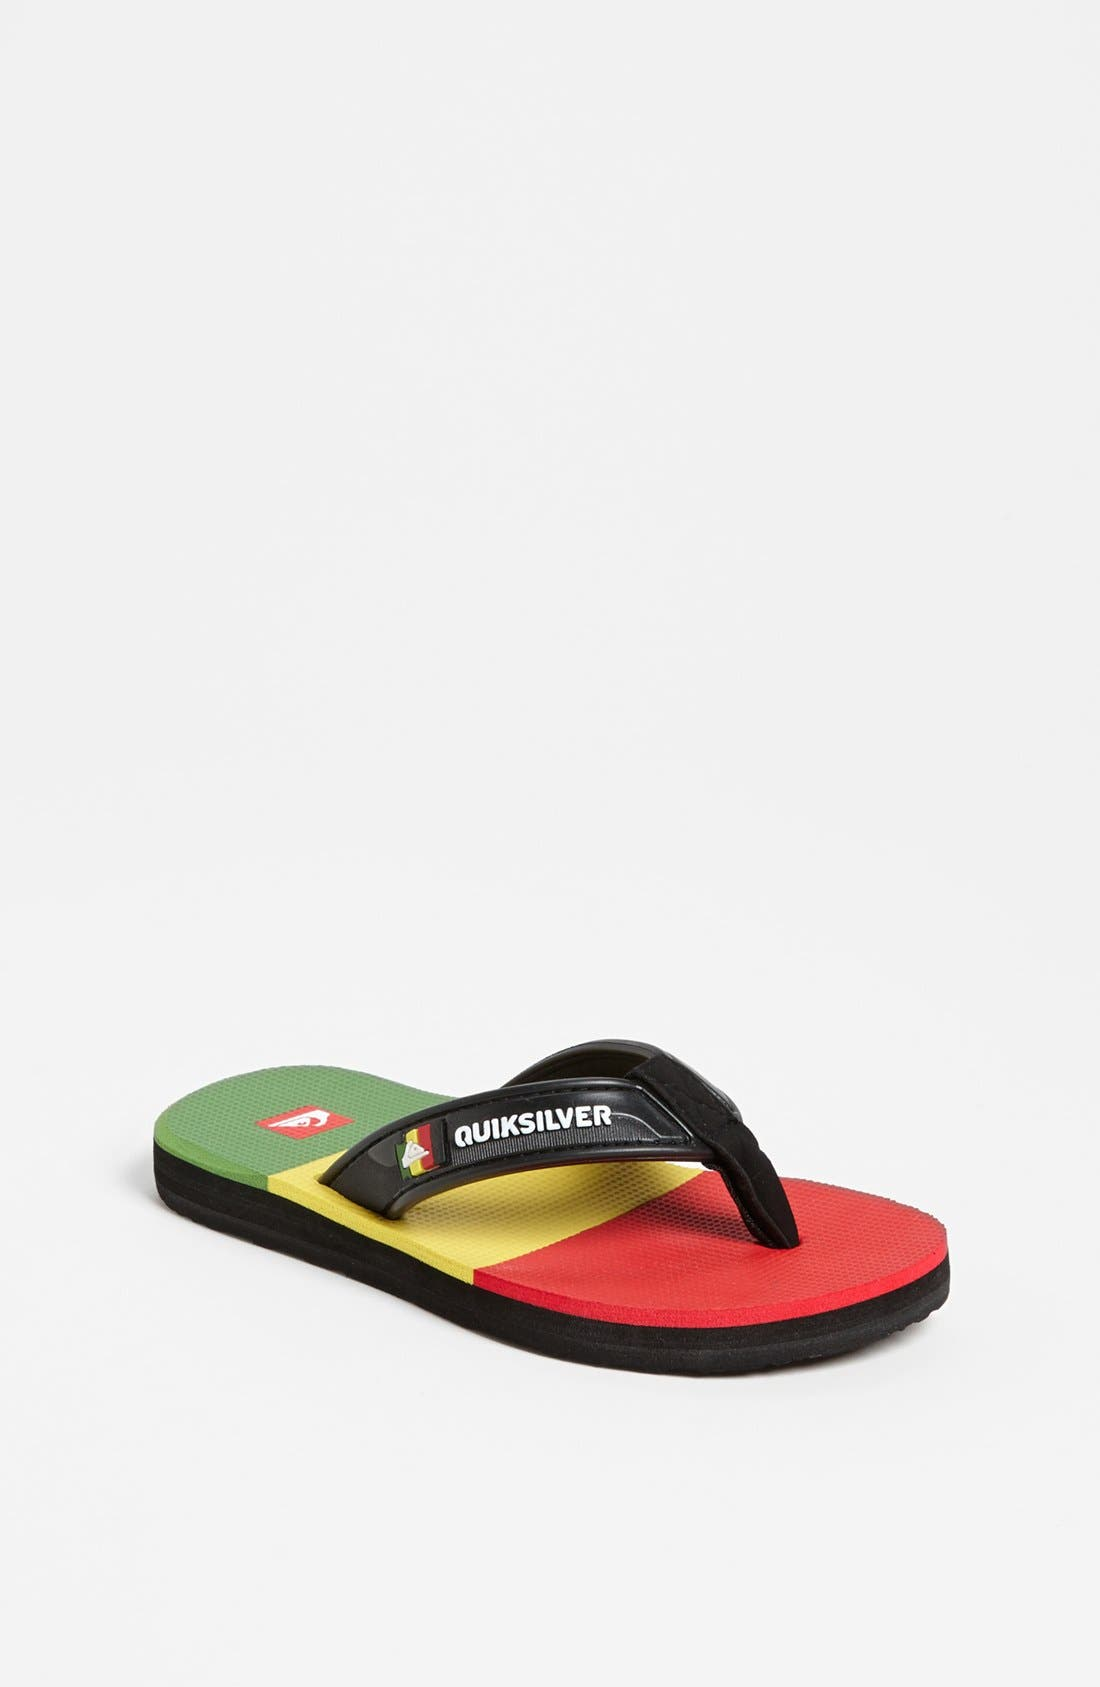 Main Image - Quiksilver 'Eclipsed' Sandal (Little Kid & Big Kid)